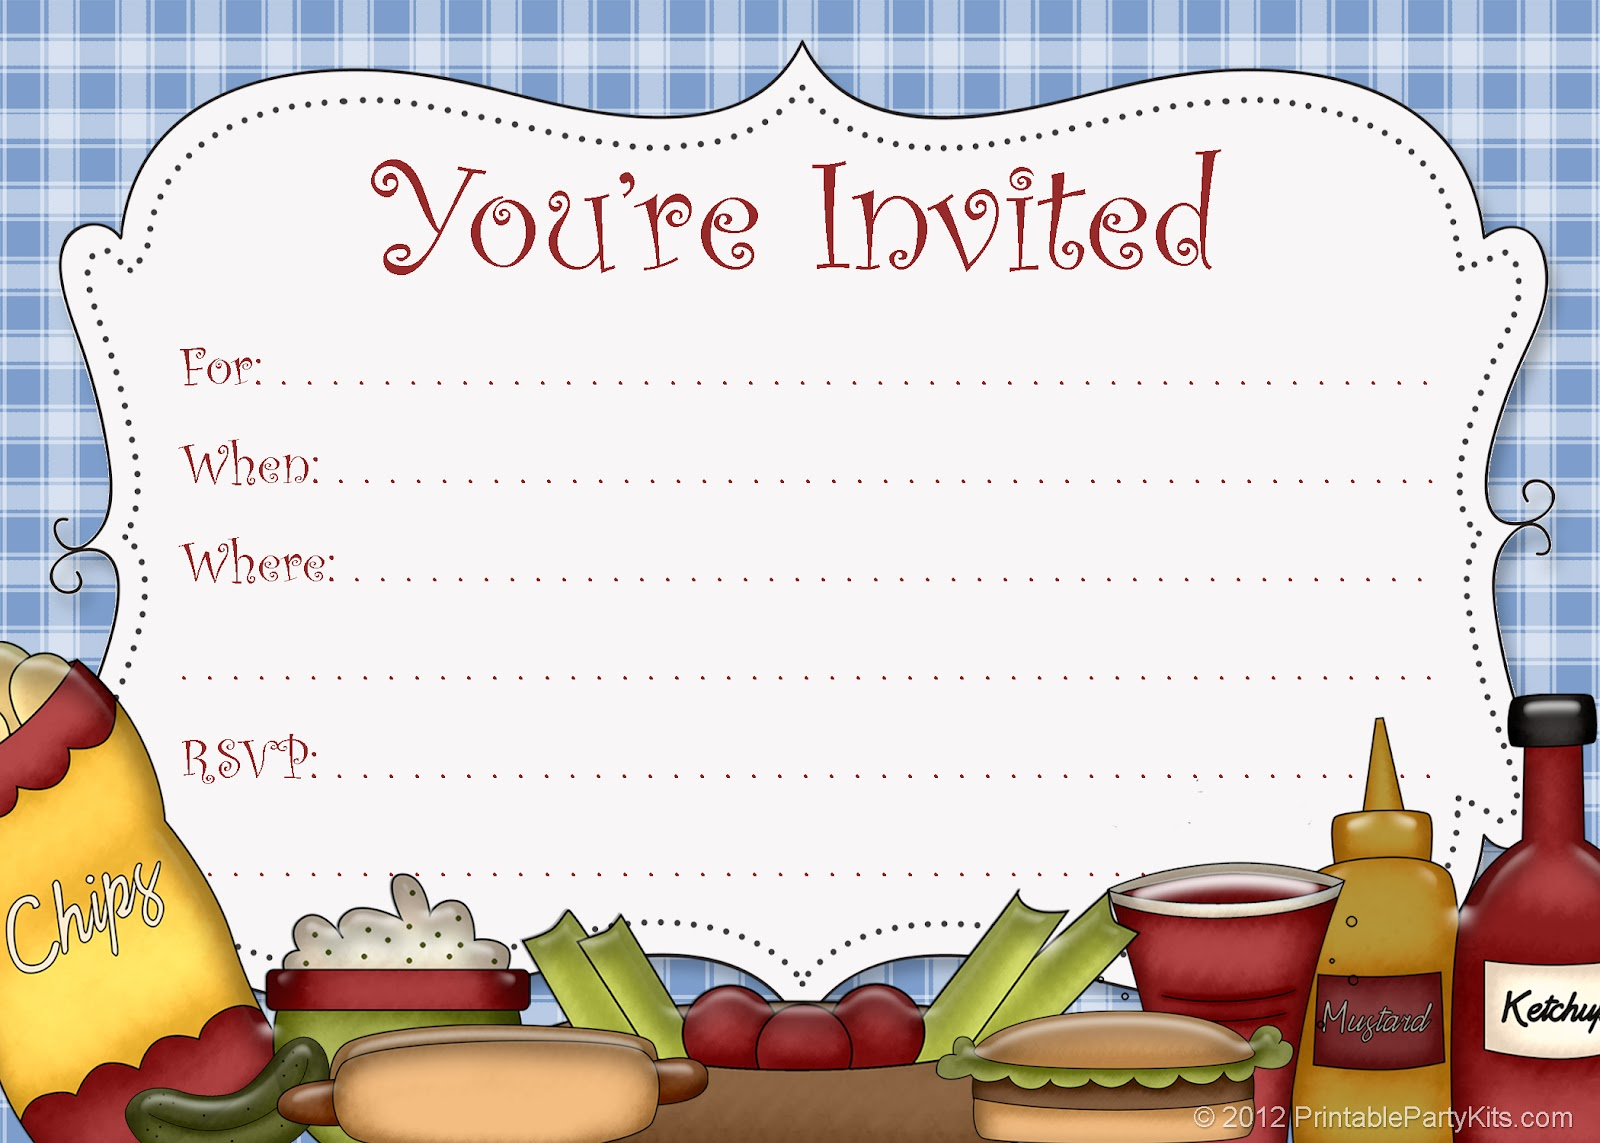 printable barbecue invitation template ctsfashion com best images of printable blank bbq invitations bbq party printable bbq party invitation templates